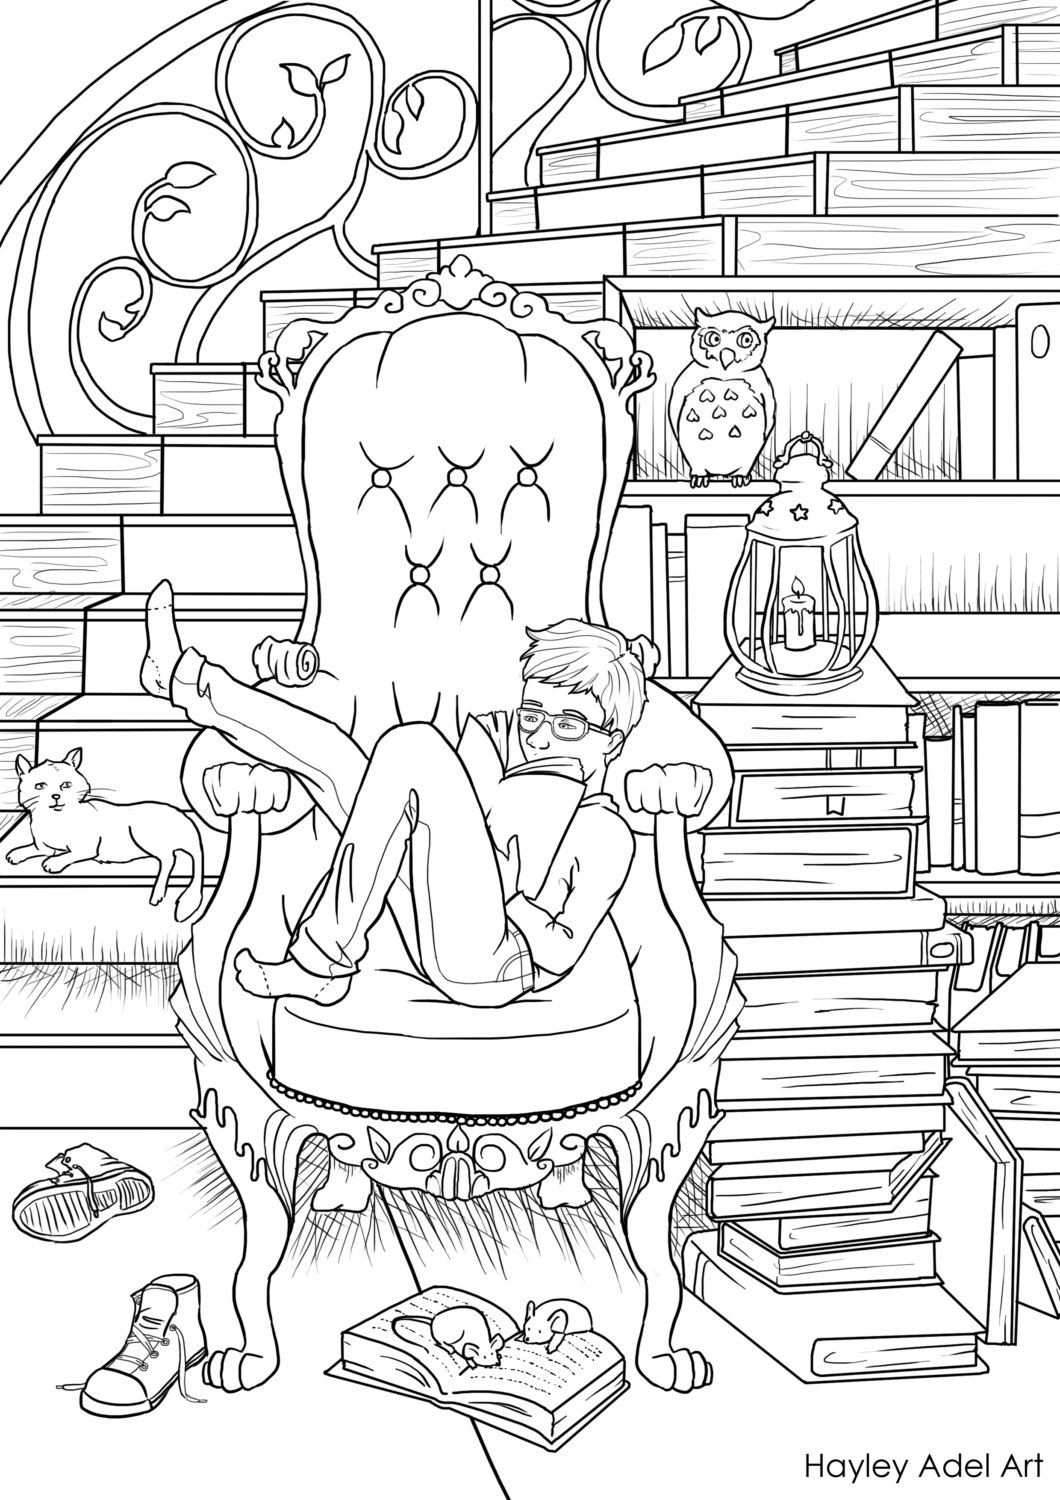 Dream Library Coloring Page Etsy Coloring Pages Coloring Books Cat Coloring Page